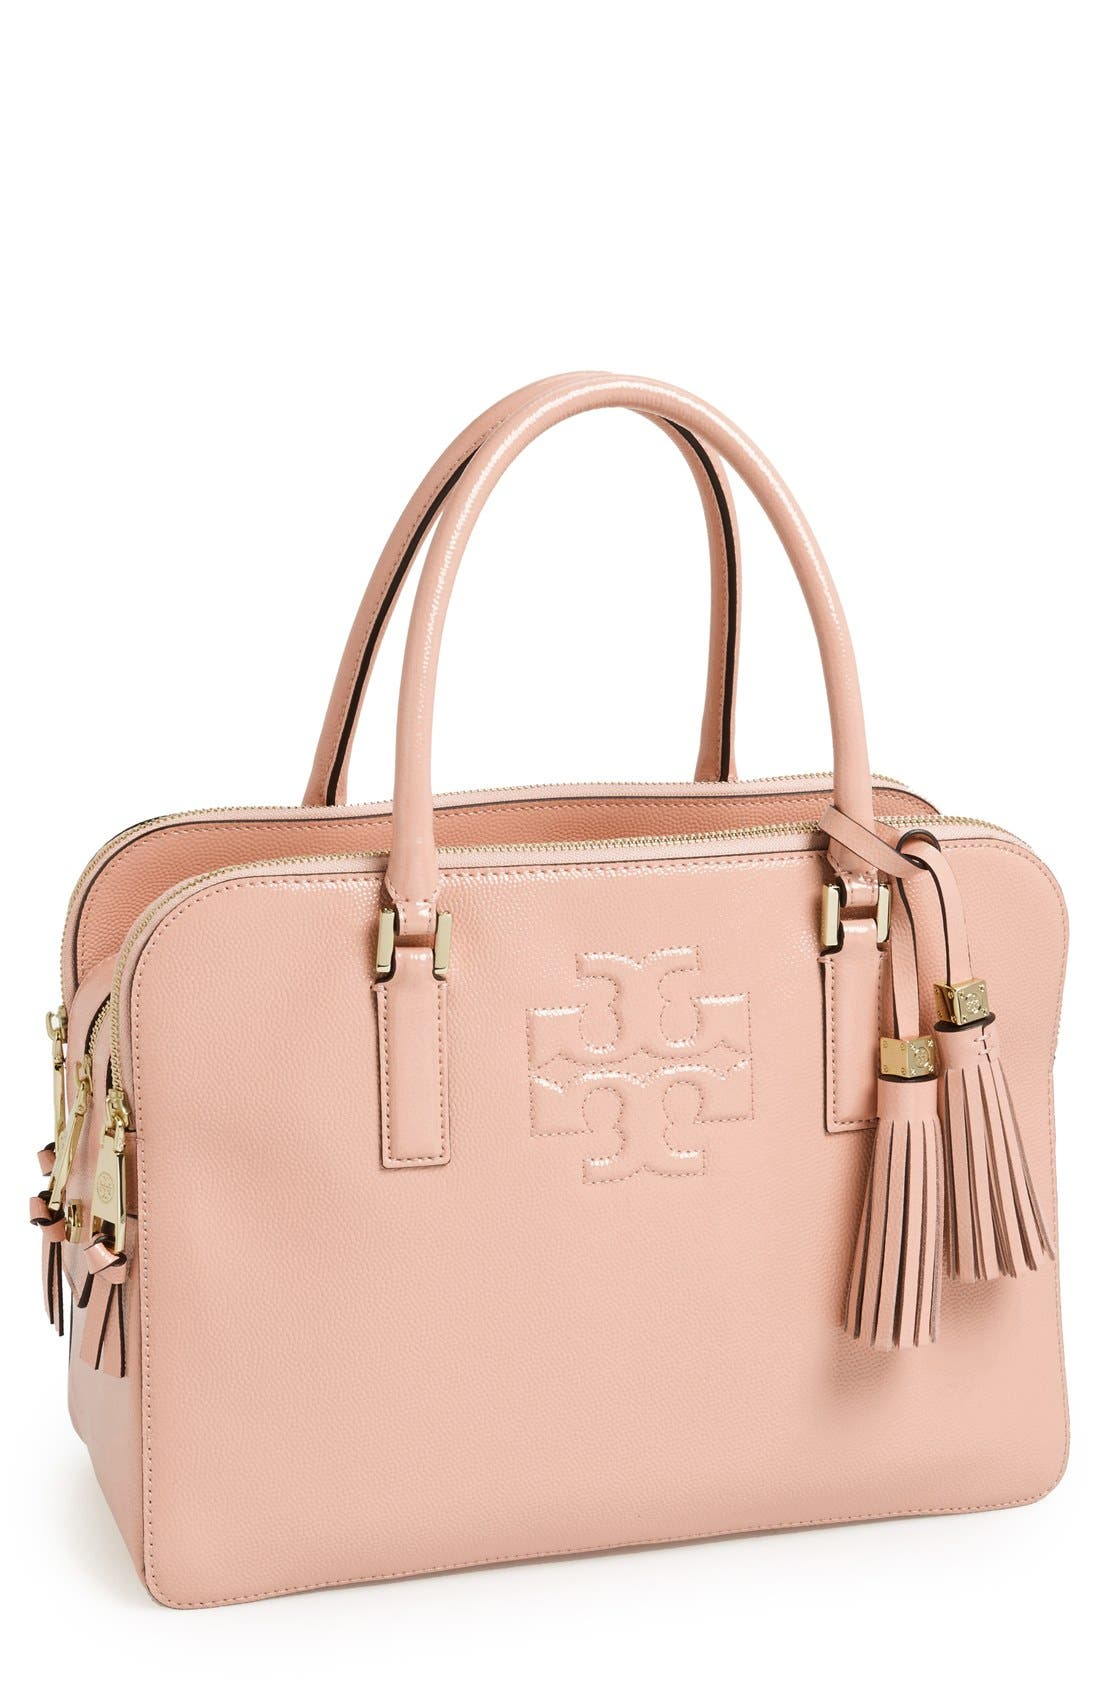 Alternate Image 1 Selected - Tory Burch 'Thea' Patent Leather Triple Zip Satchel